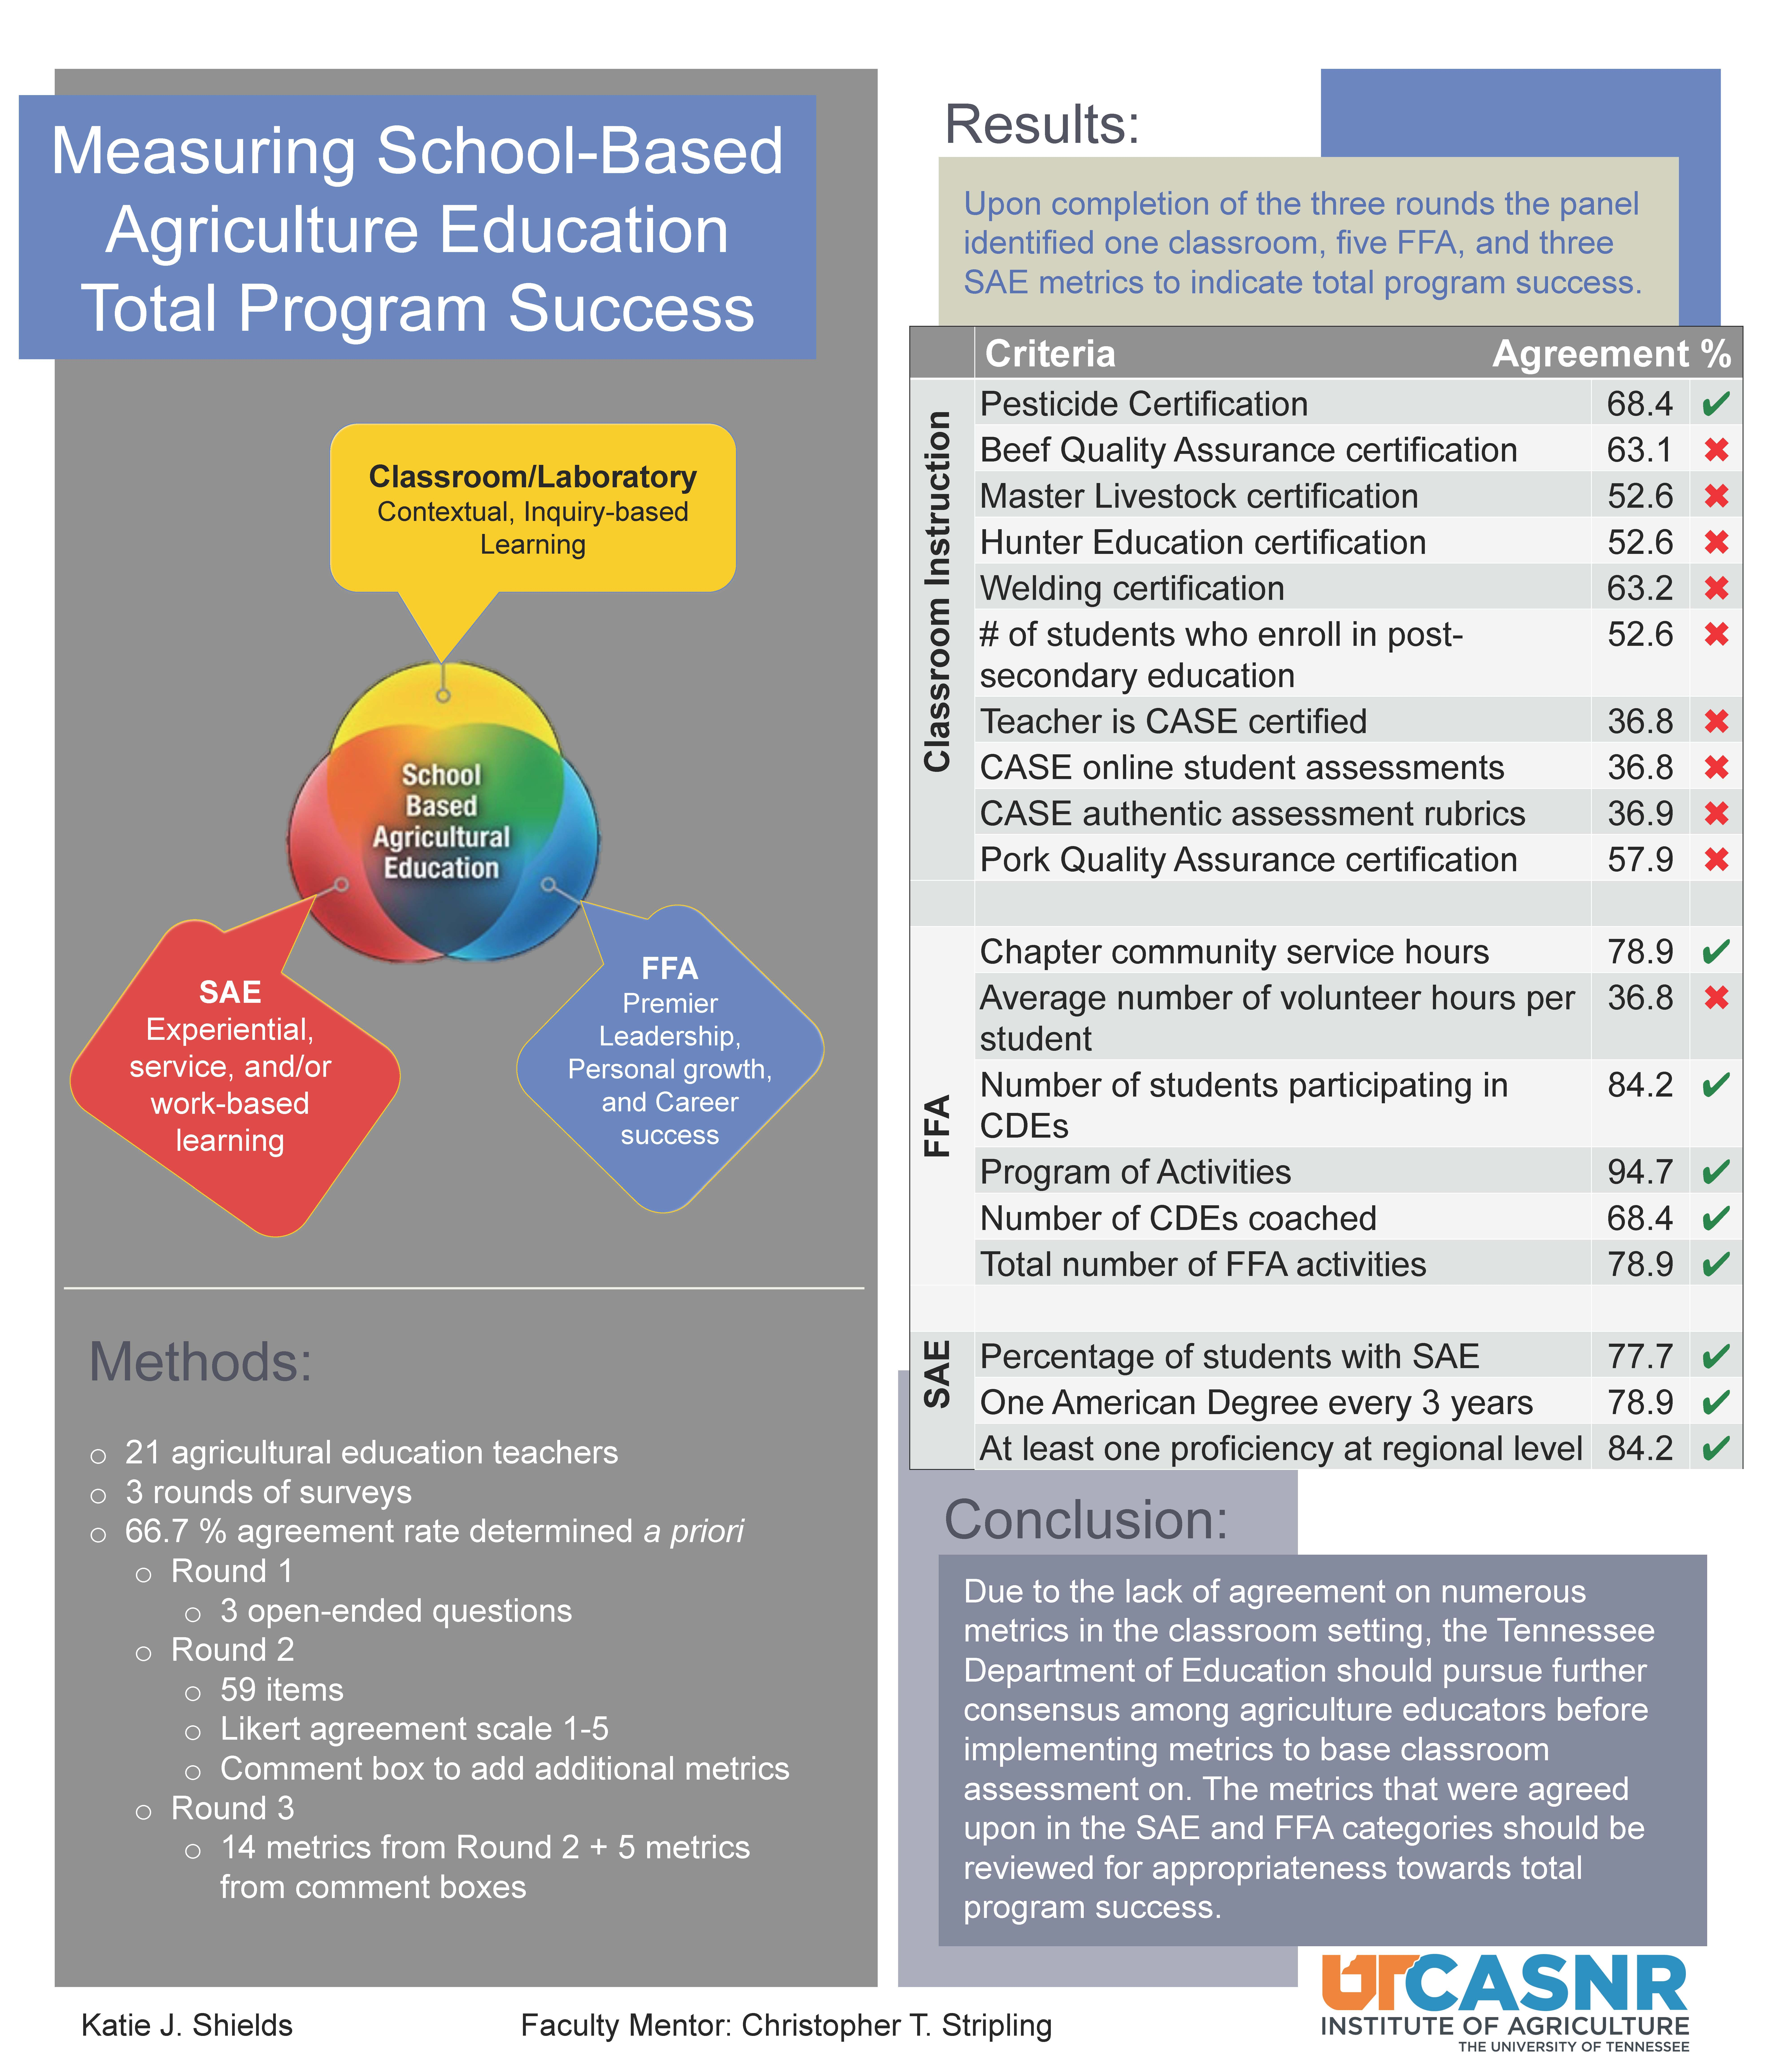 Measuring School-Based Agriculture Education Total Program Success